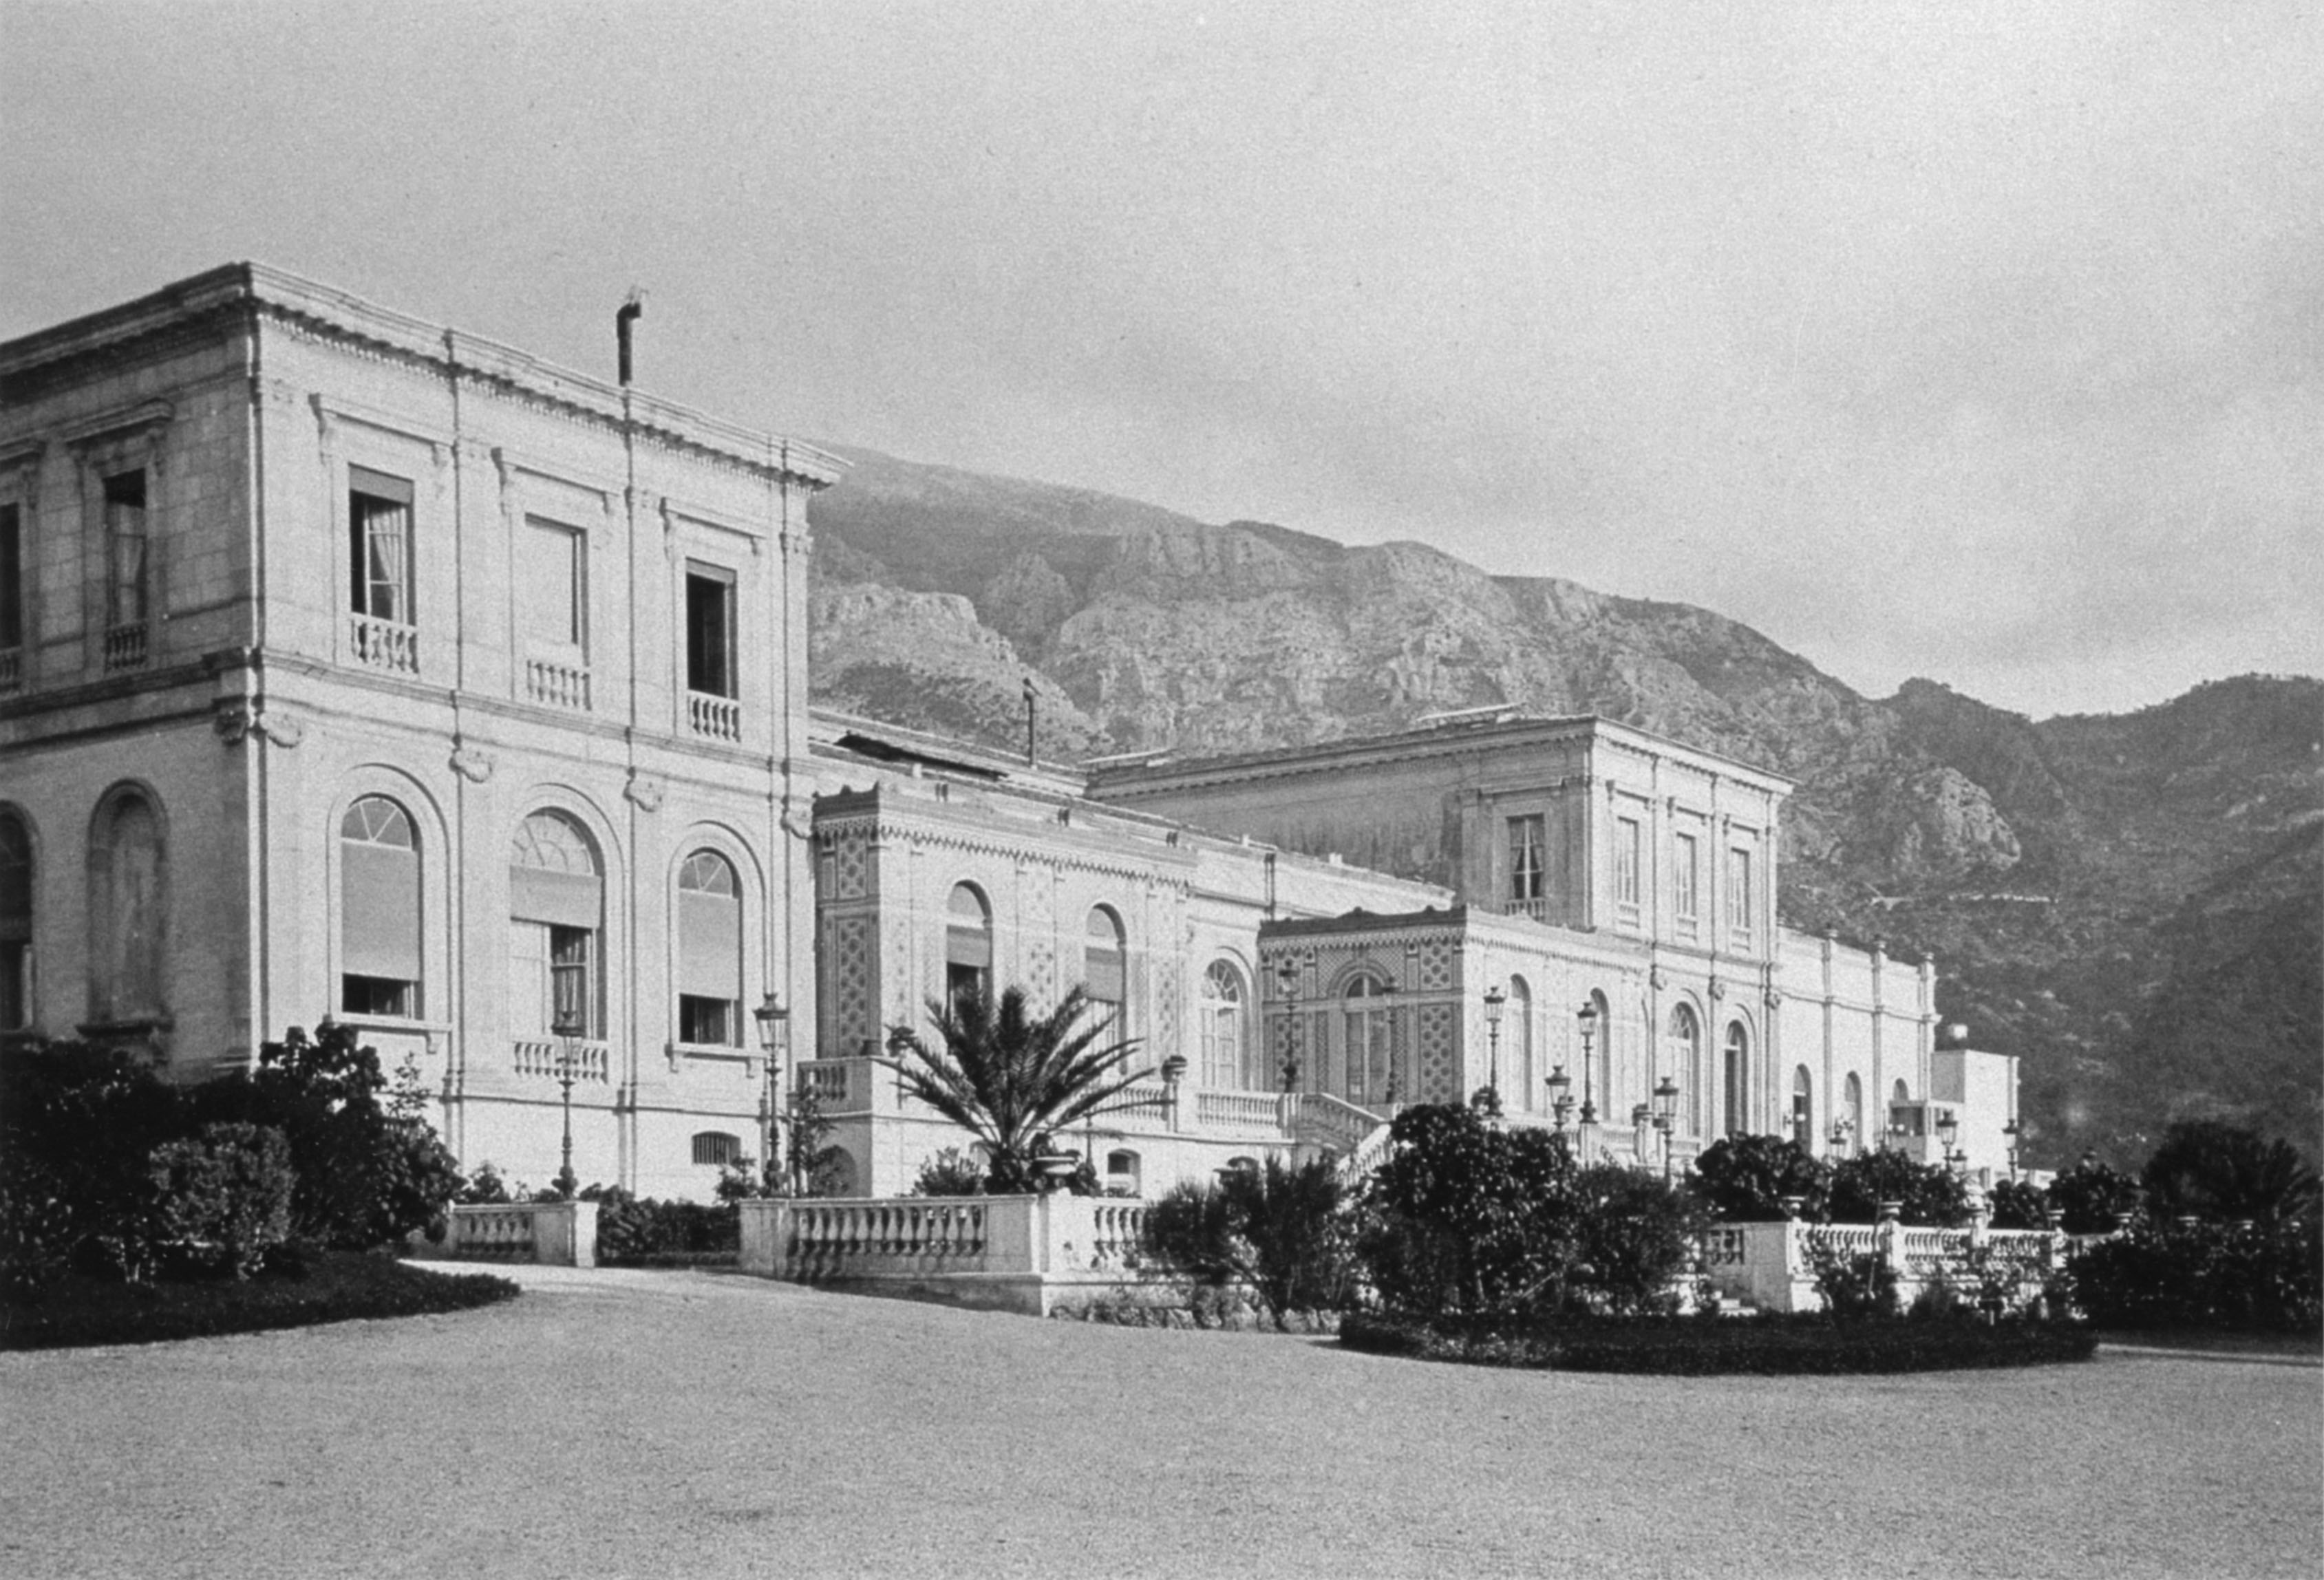 Facade of the casino in Monte Carlo on the coast. Photo taken before 1878.